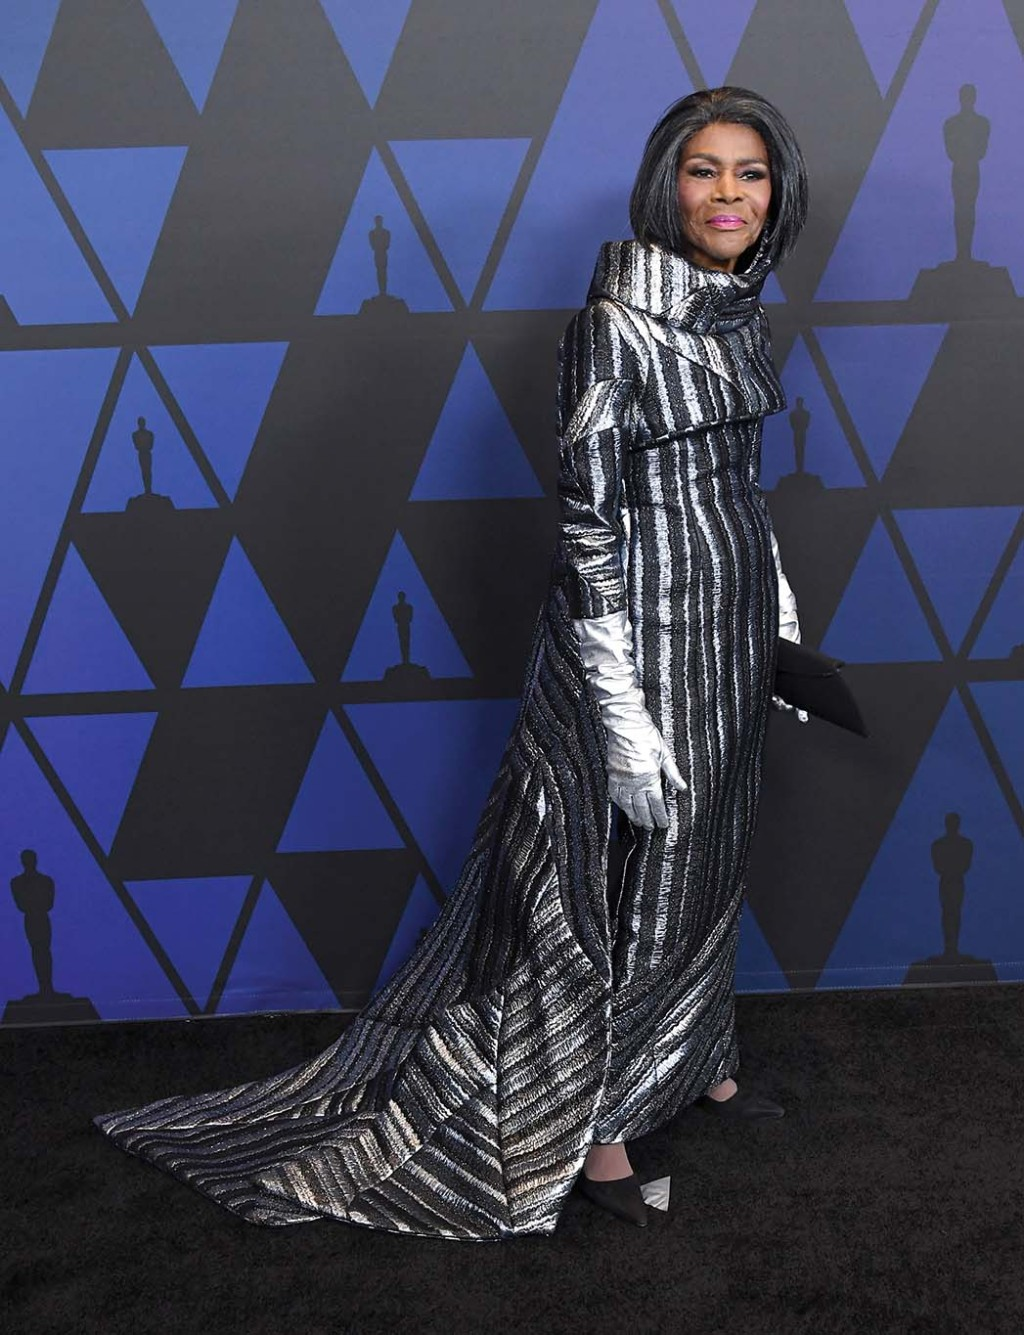 Cicely Tyson at the 2018 Governors Awards, where she received an honorary Oscar, in a two-piece ensemble with metallic leather gloves by B Michael Haute Couture.